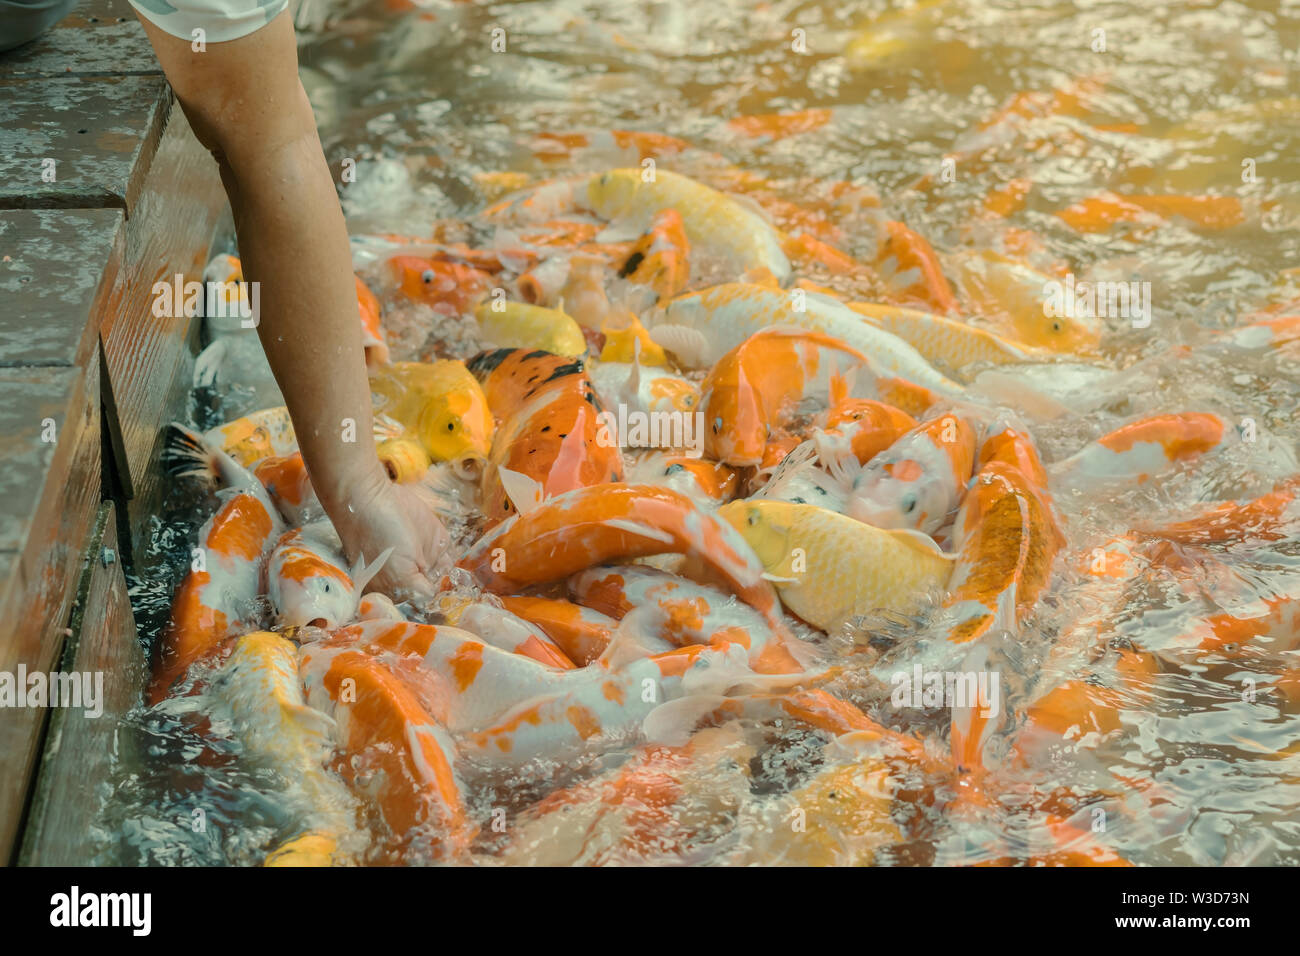 Woman feeding food to fancy carp fish by hand in the japanese pond. - Stock Image